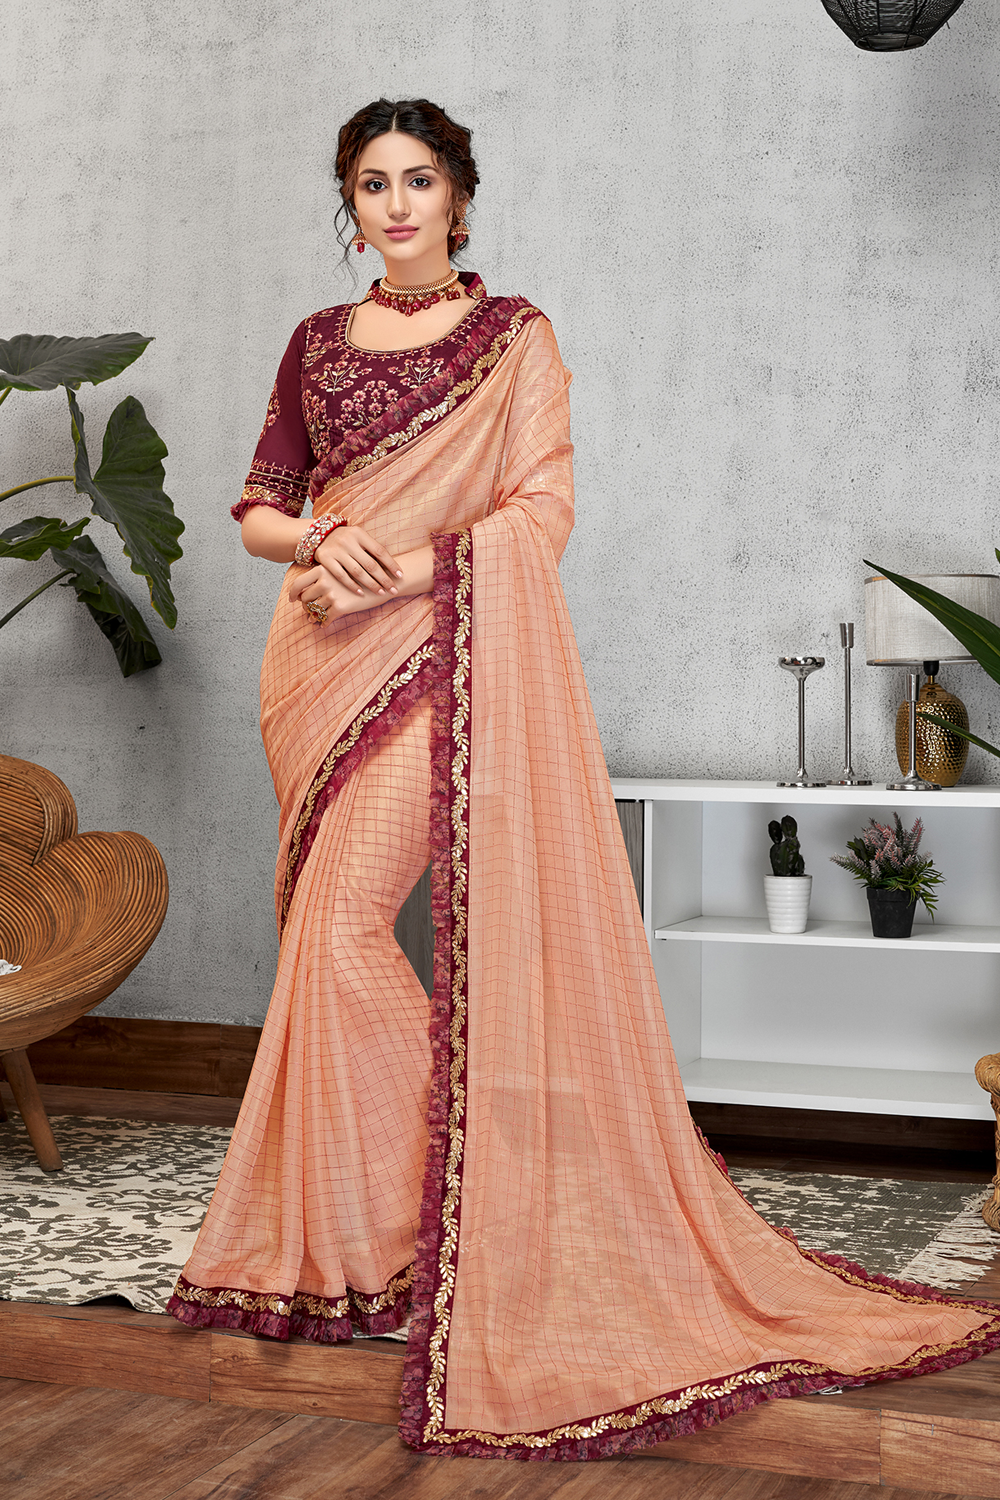 Blending the new-age colors with classic style  frilly pastel saree